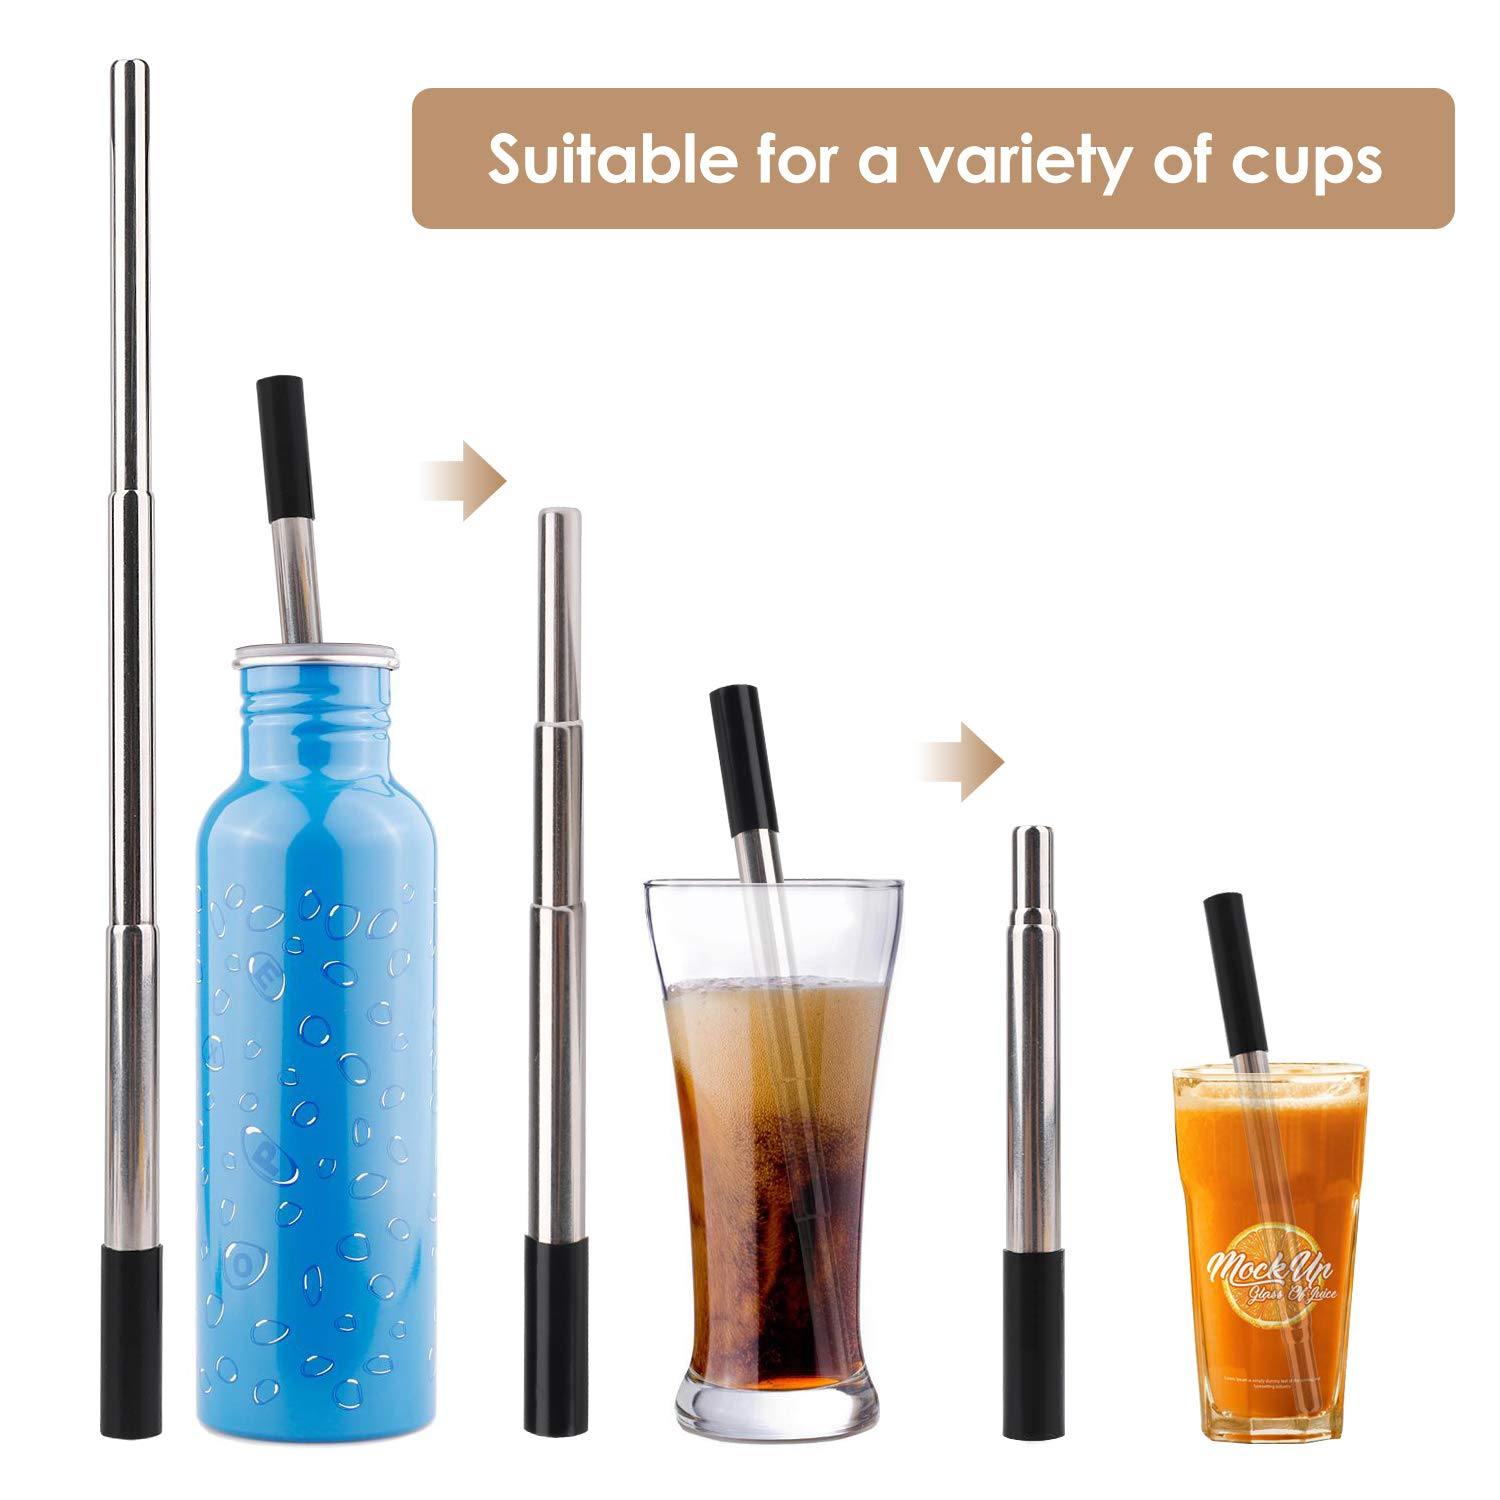 2 Pack Telescopic Straws Reusable Portable, Eco-friendly Drinking Metal Straws, Aluminum Case with Cleaning Brush for Travel Home Office Gift (Black+Gold)